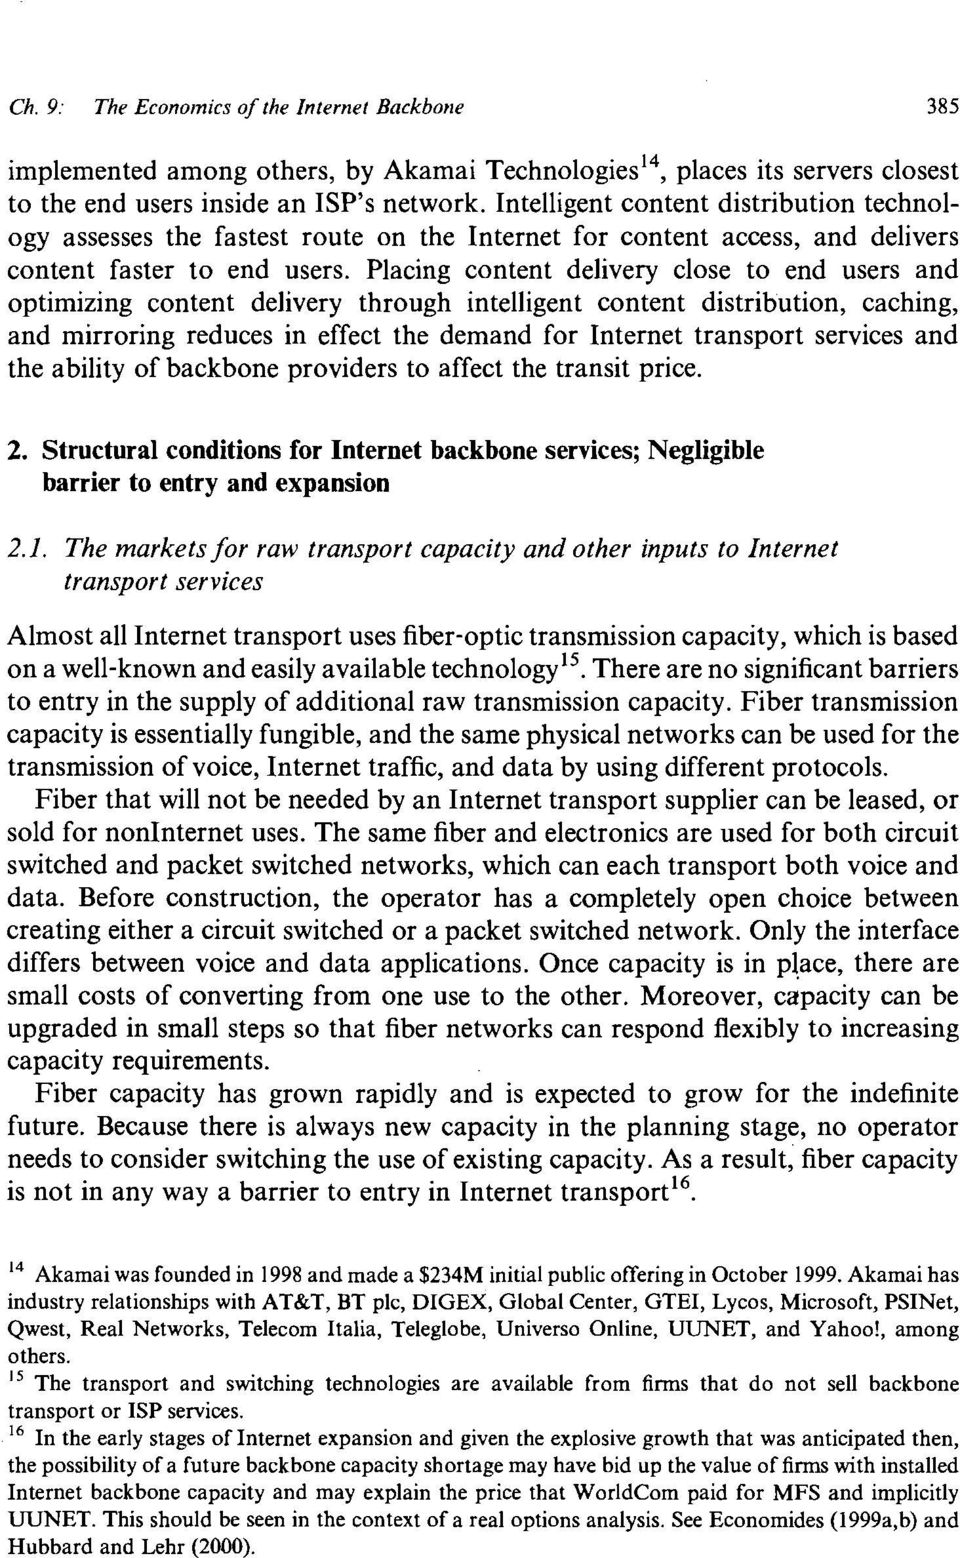 Placing content delivery close to end users and optimizing content delivery through intelligent content distribution, caching, and mirroring reduces in effect the demand for Internet transport